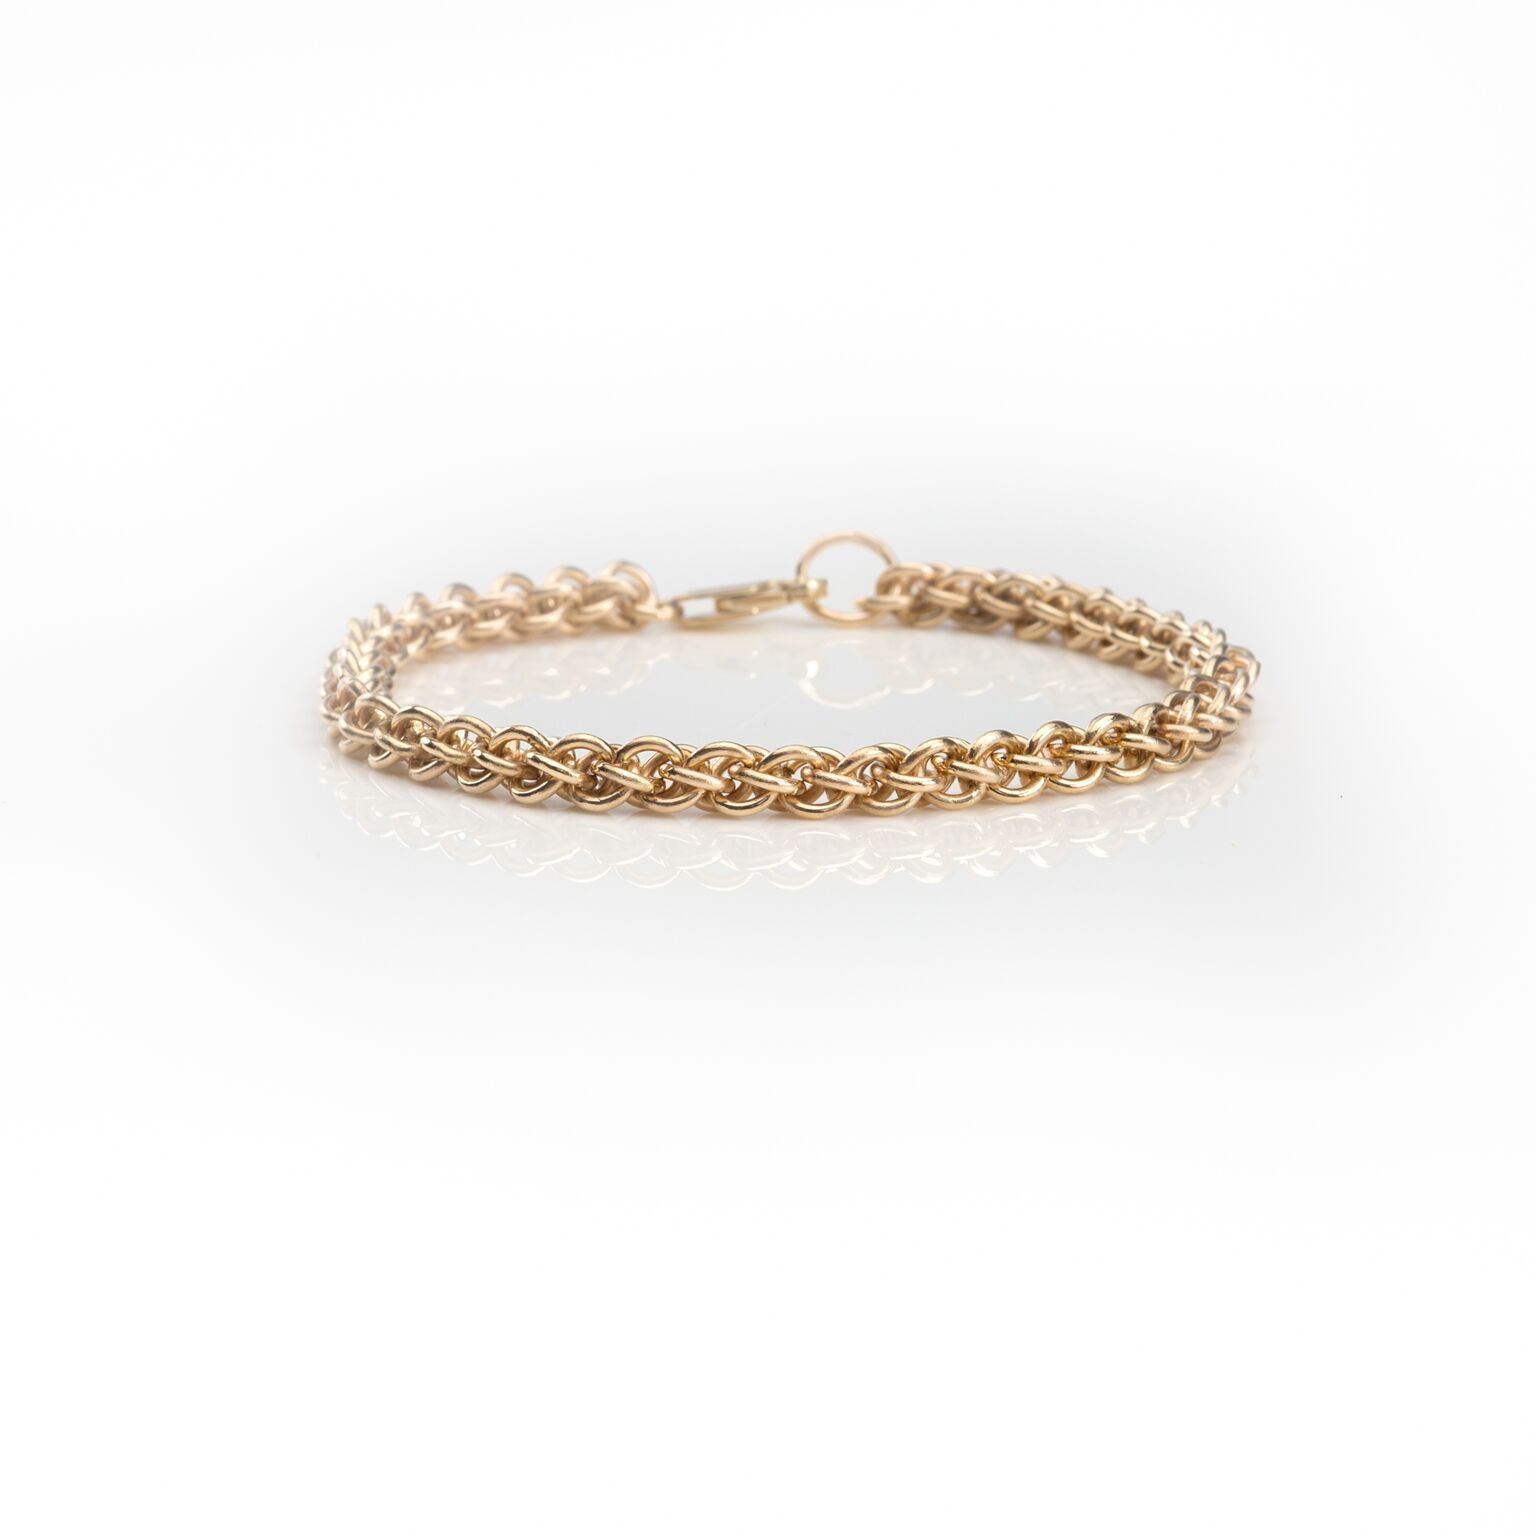 Susannah King Jewellery Kings Pattern Bracelet